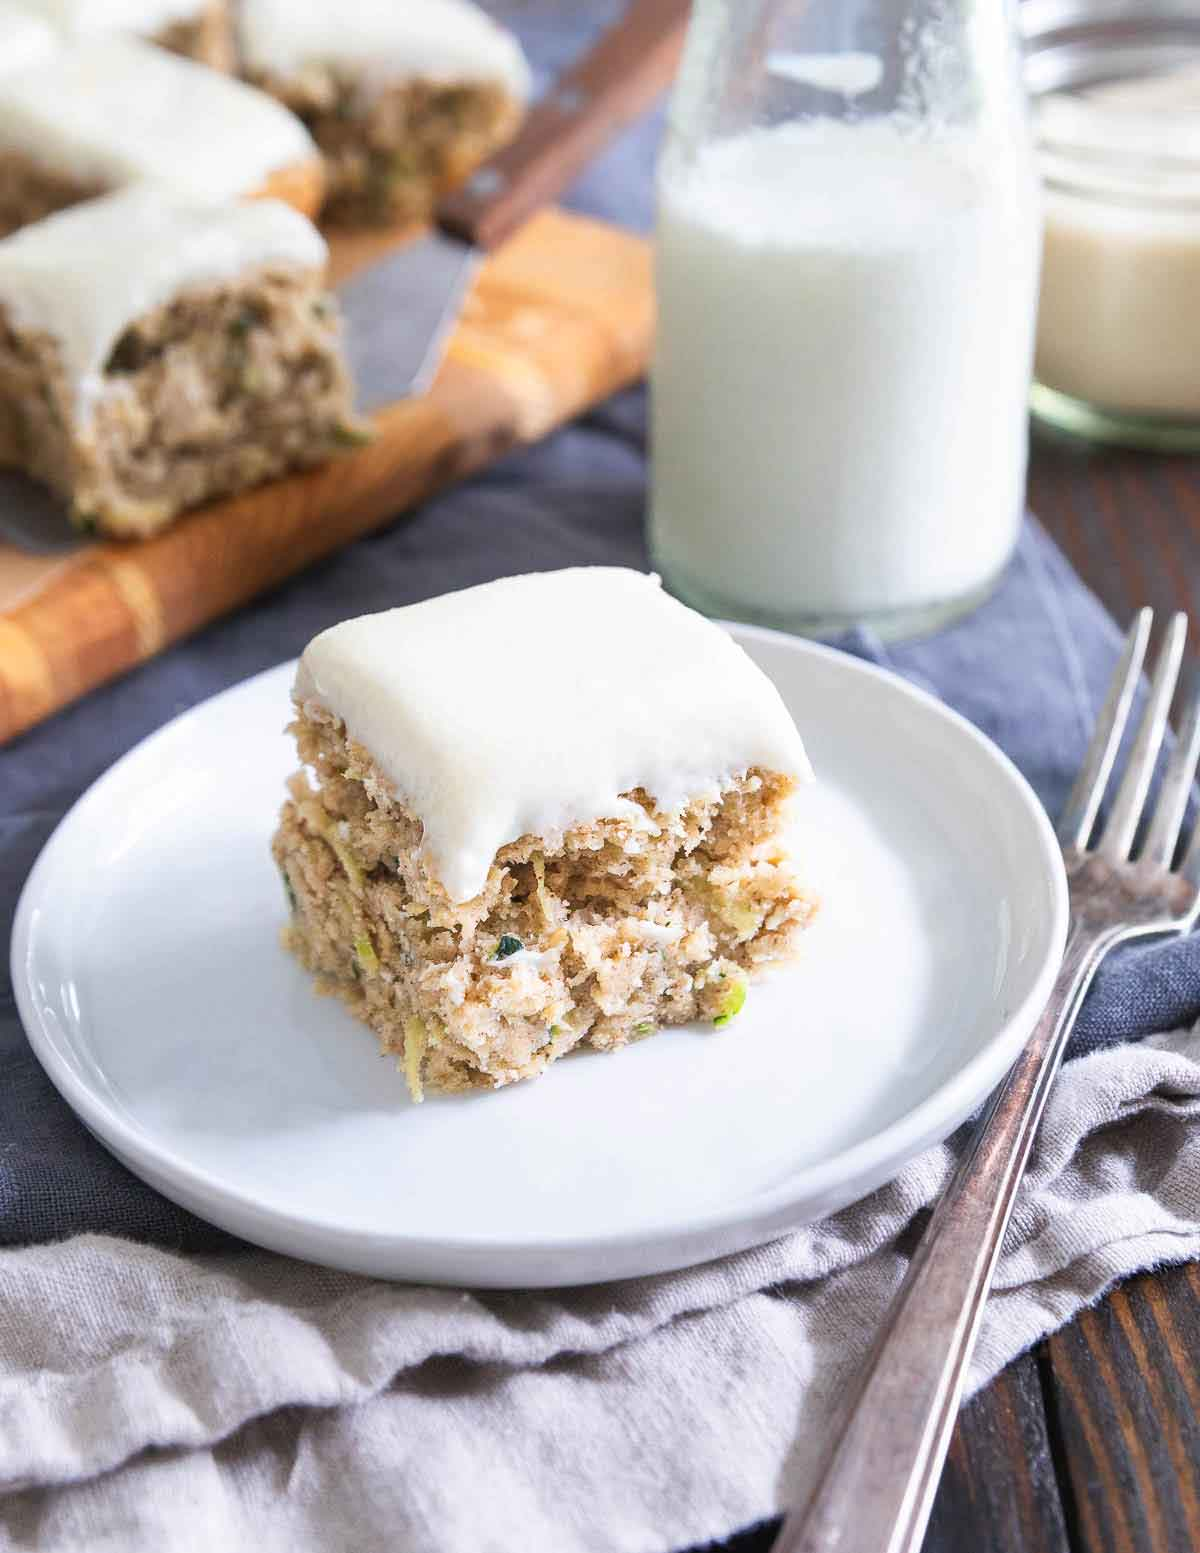 These zucchini bars use healthier, gluten-free ingredients, less sugar and less oil than the classic recipe with a better for you cream cheese icing too!